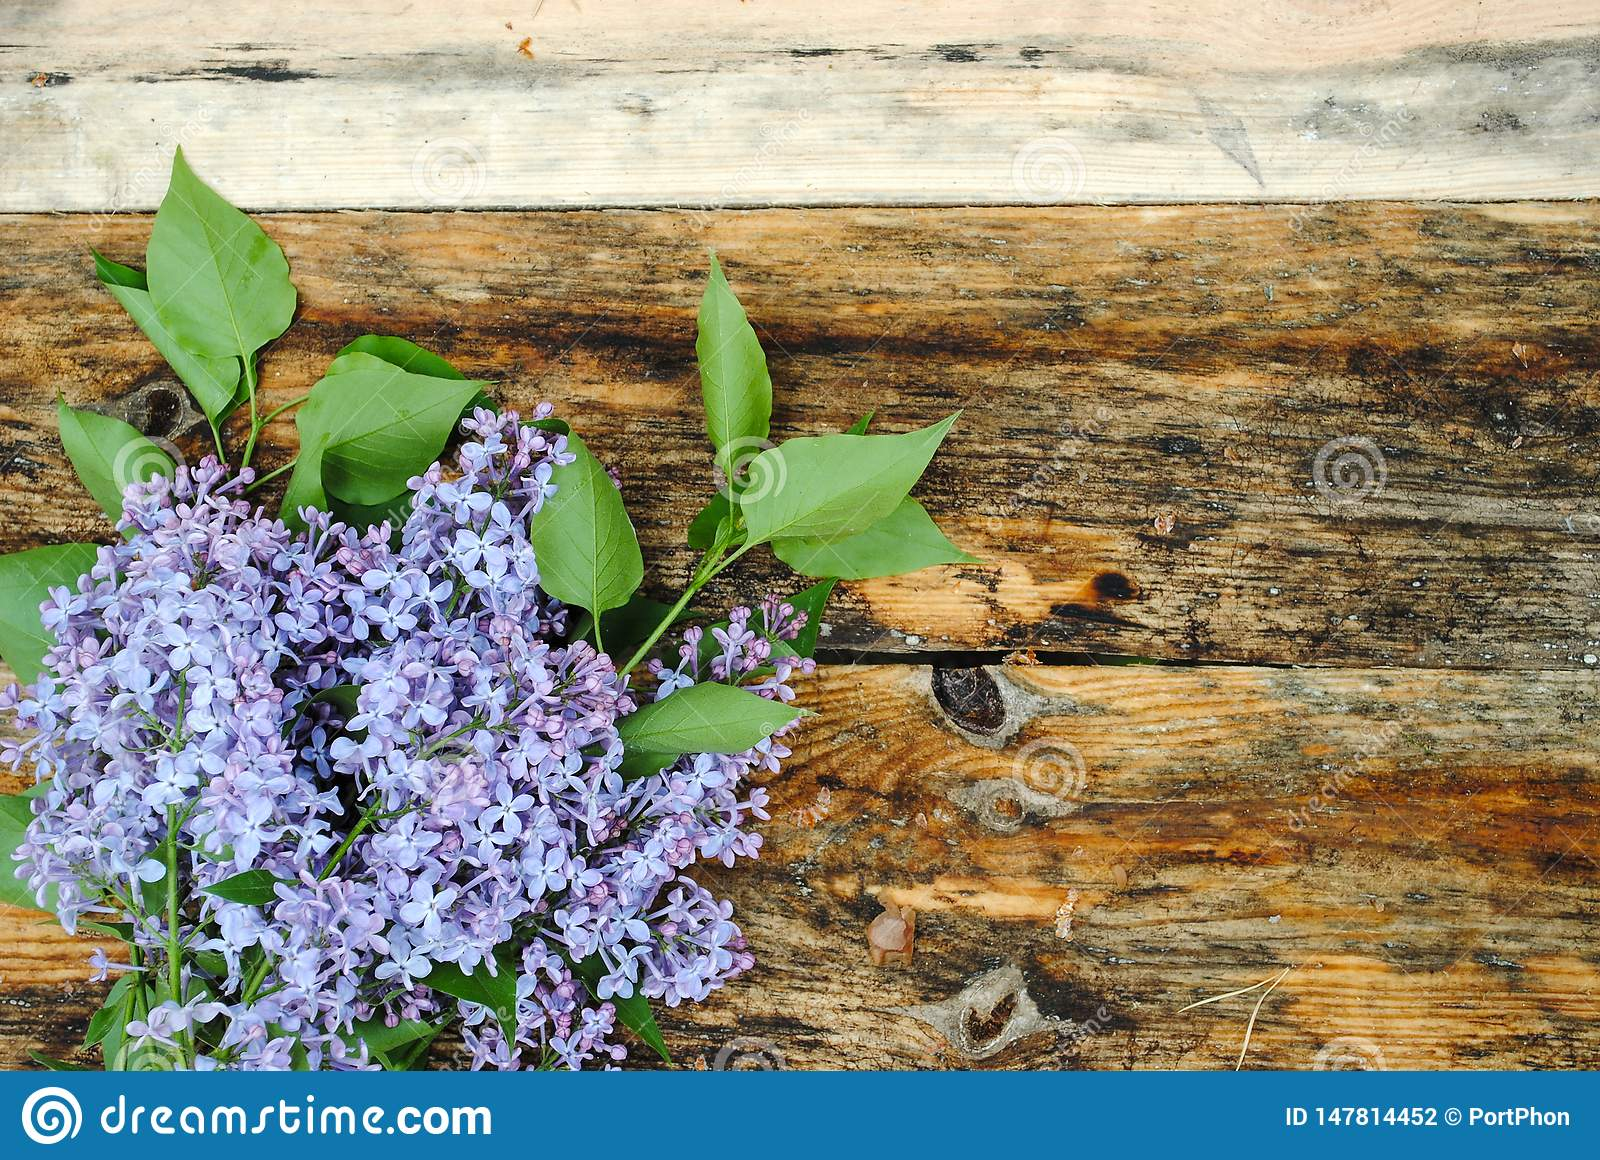 Lilac flowers on wooden table